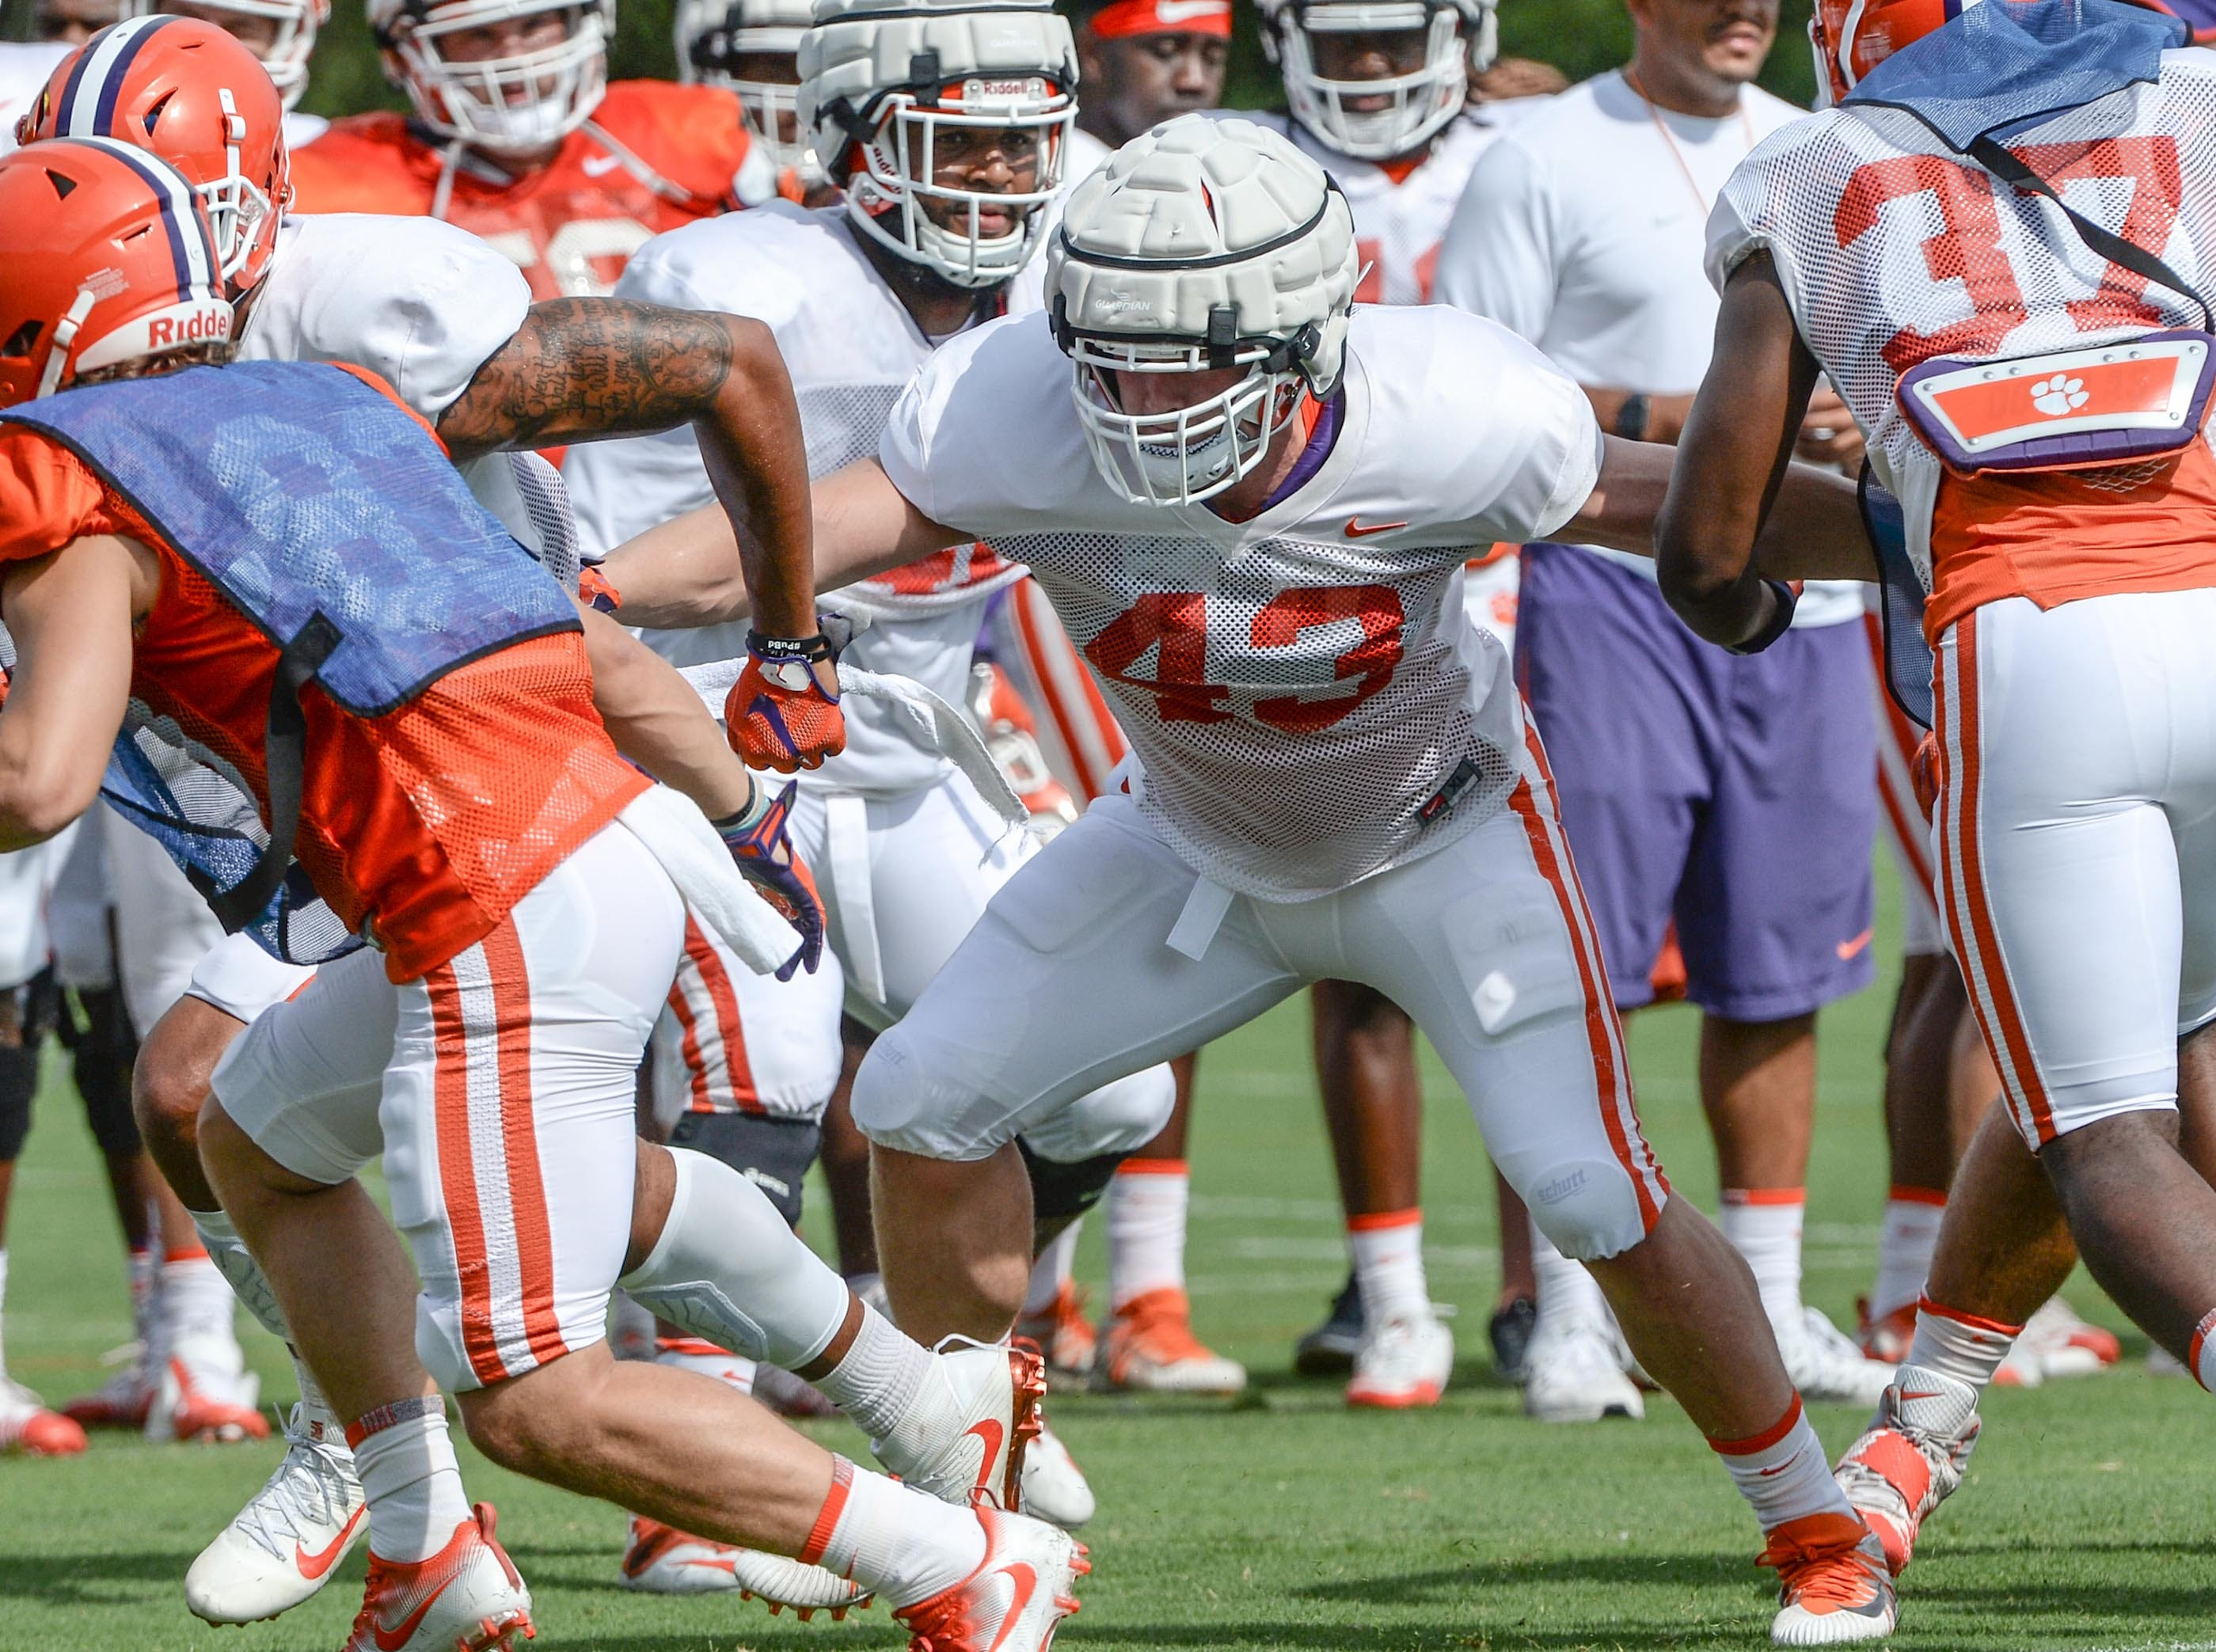 Clemson linebacker Chad Smith (43) during fall practice in Clemson on Wednesday.